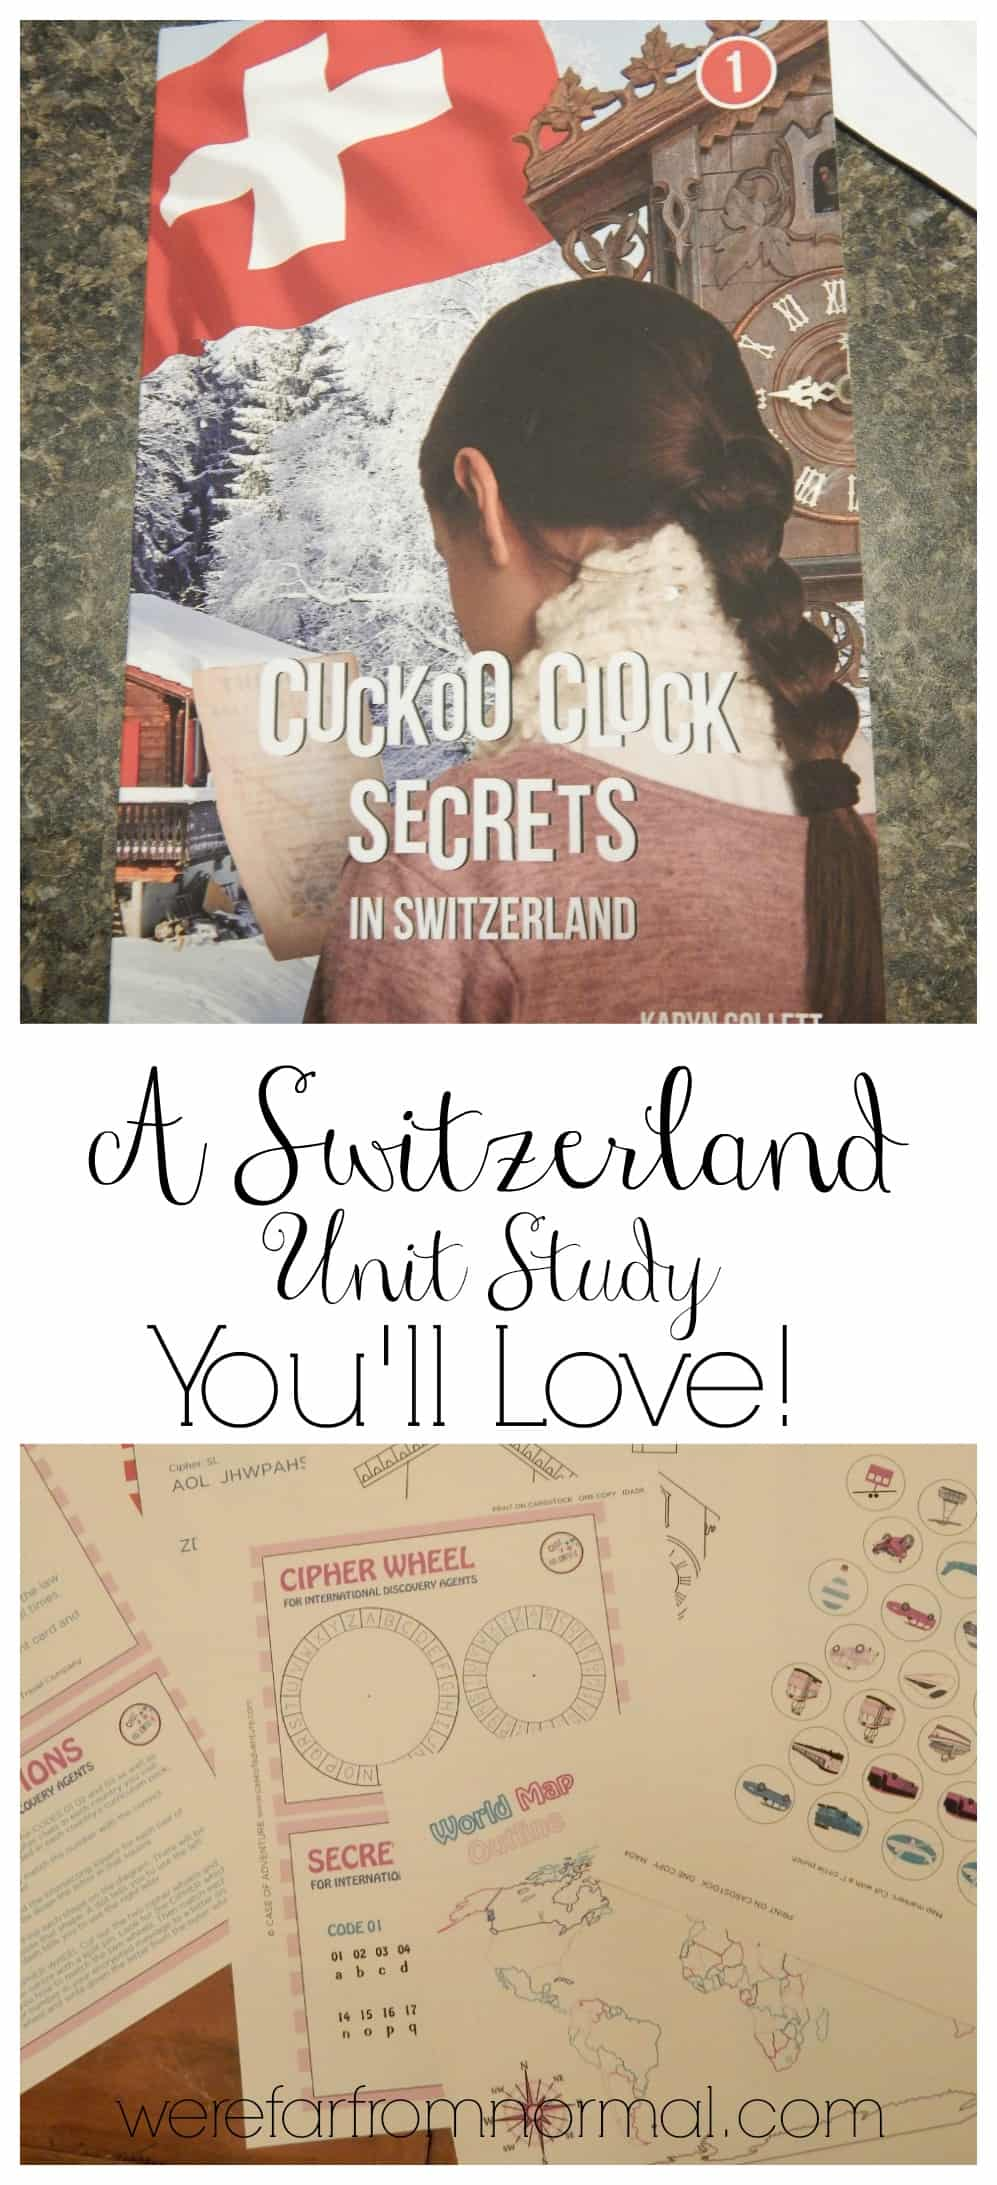 A Switzerland Unit Study You Ll Love Far From Normal